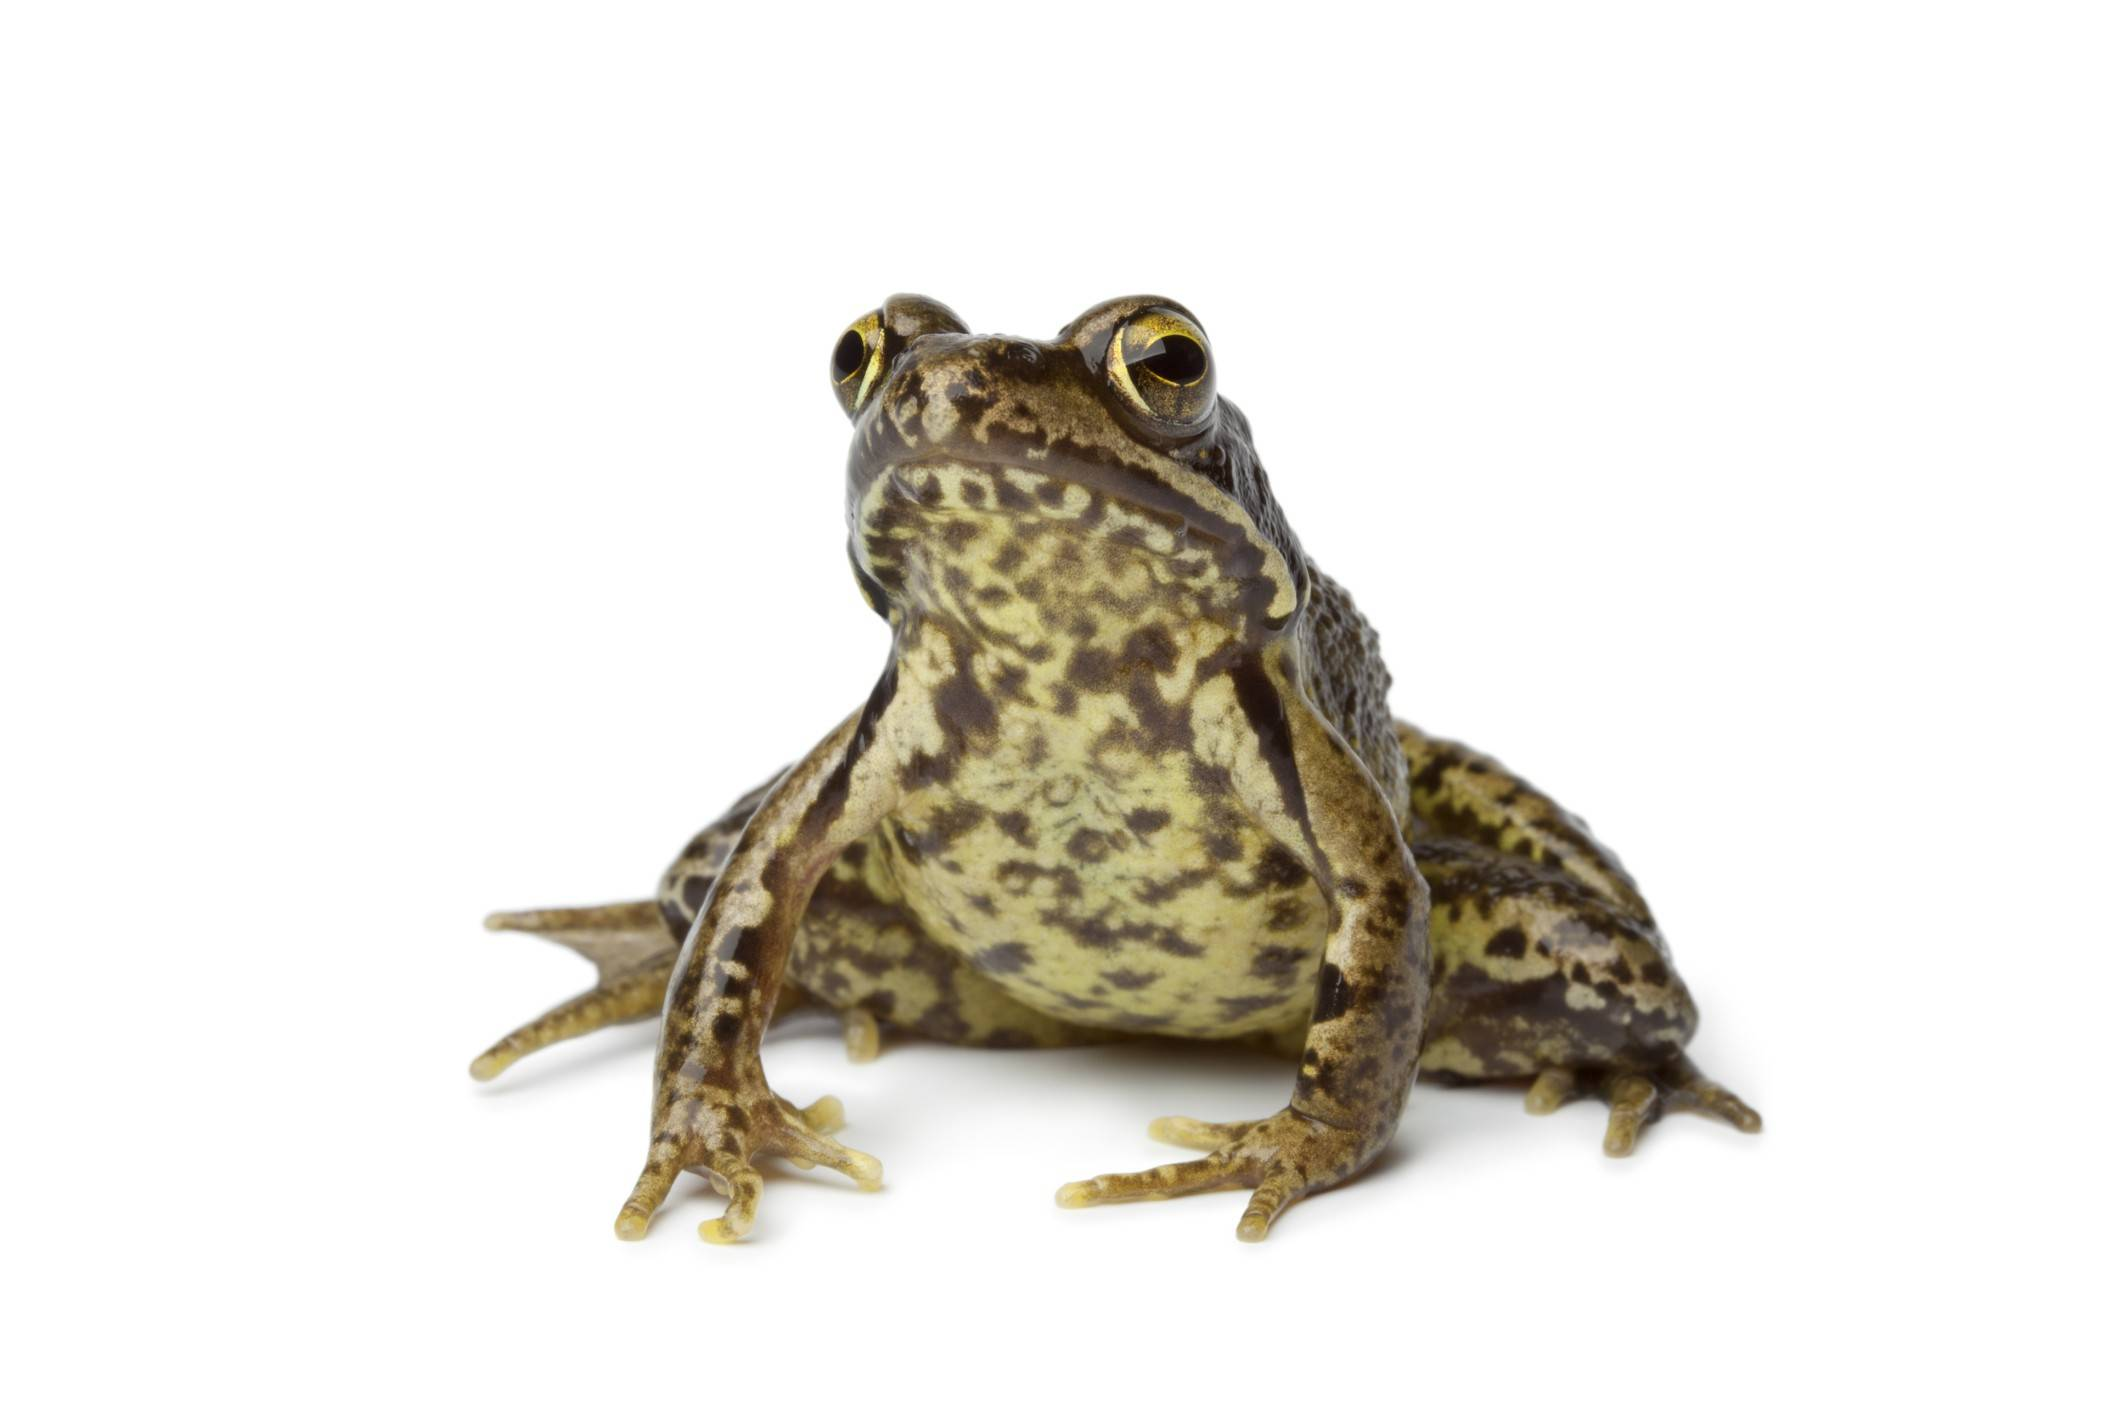 Learn to identify various types of frogs at the Creek Bend Nature Center in St. Charles.